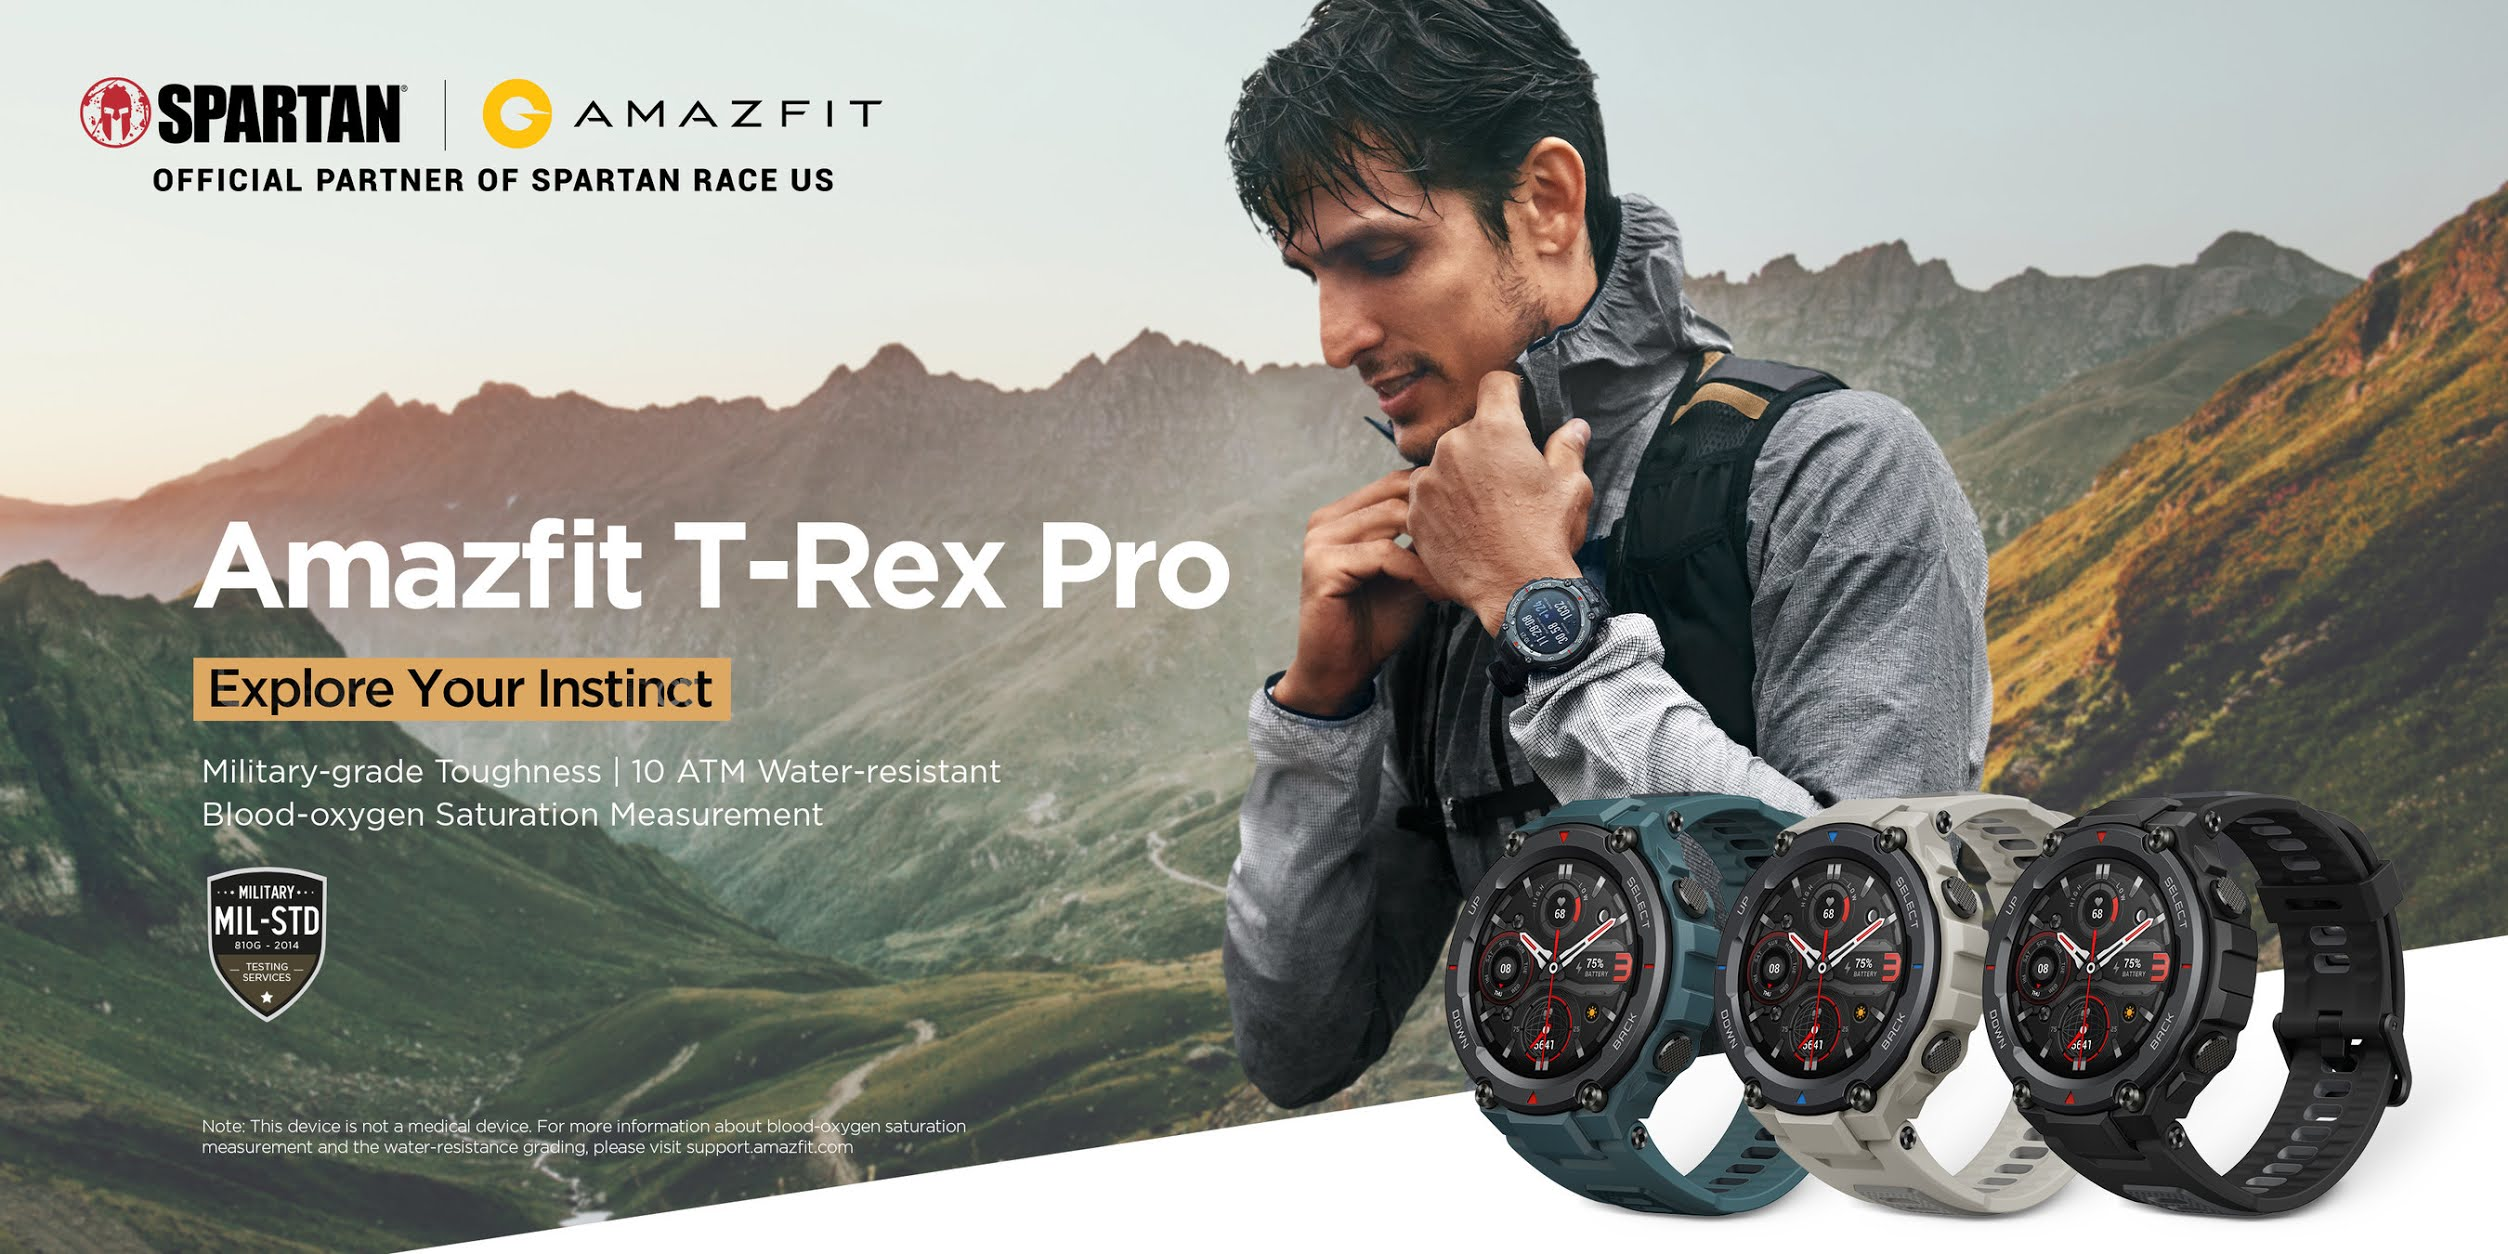 Amazfit T-Rex Pro: A Tough Military-grade Smartwatch